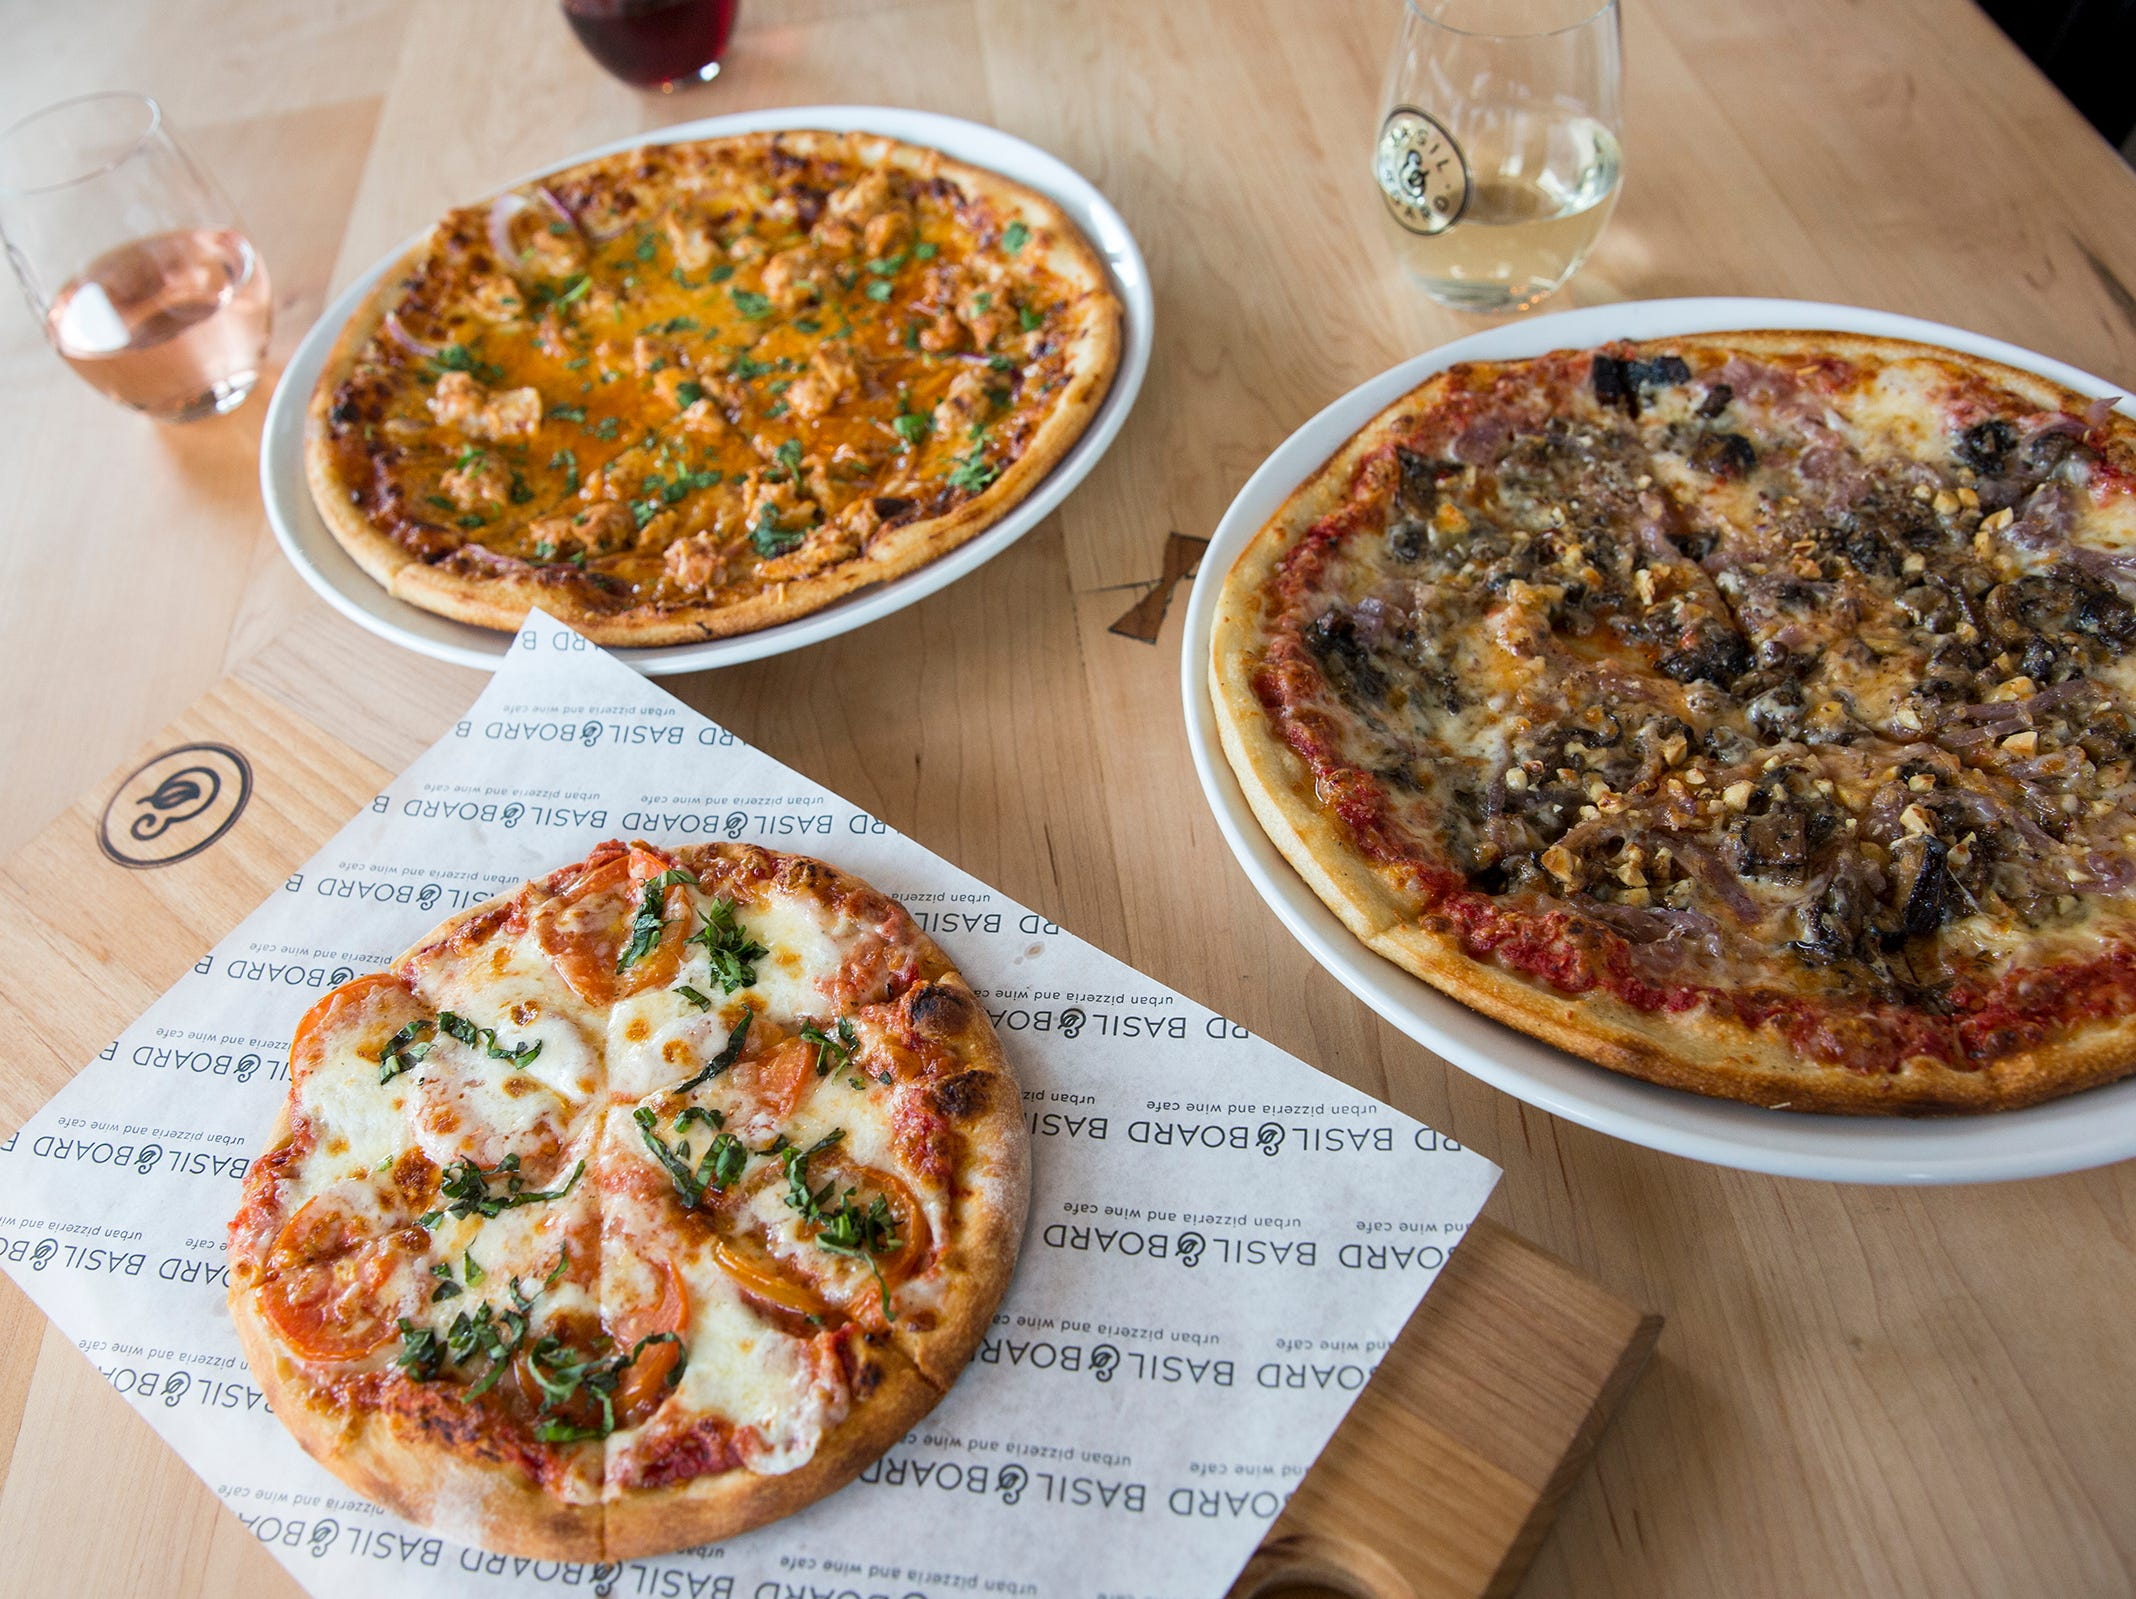 The Pacific Crest Trail pizza, the BBQ Bird pizza and a lunch sized Margherita pizza are laid out at Basil & Board in Salem on Tuesday, Feb. 26, 2019.